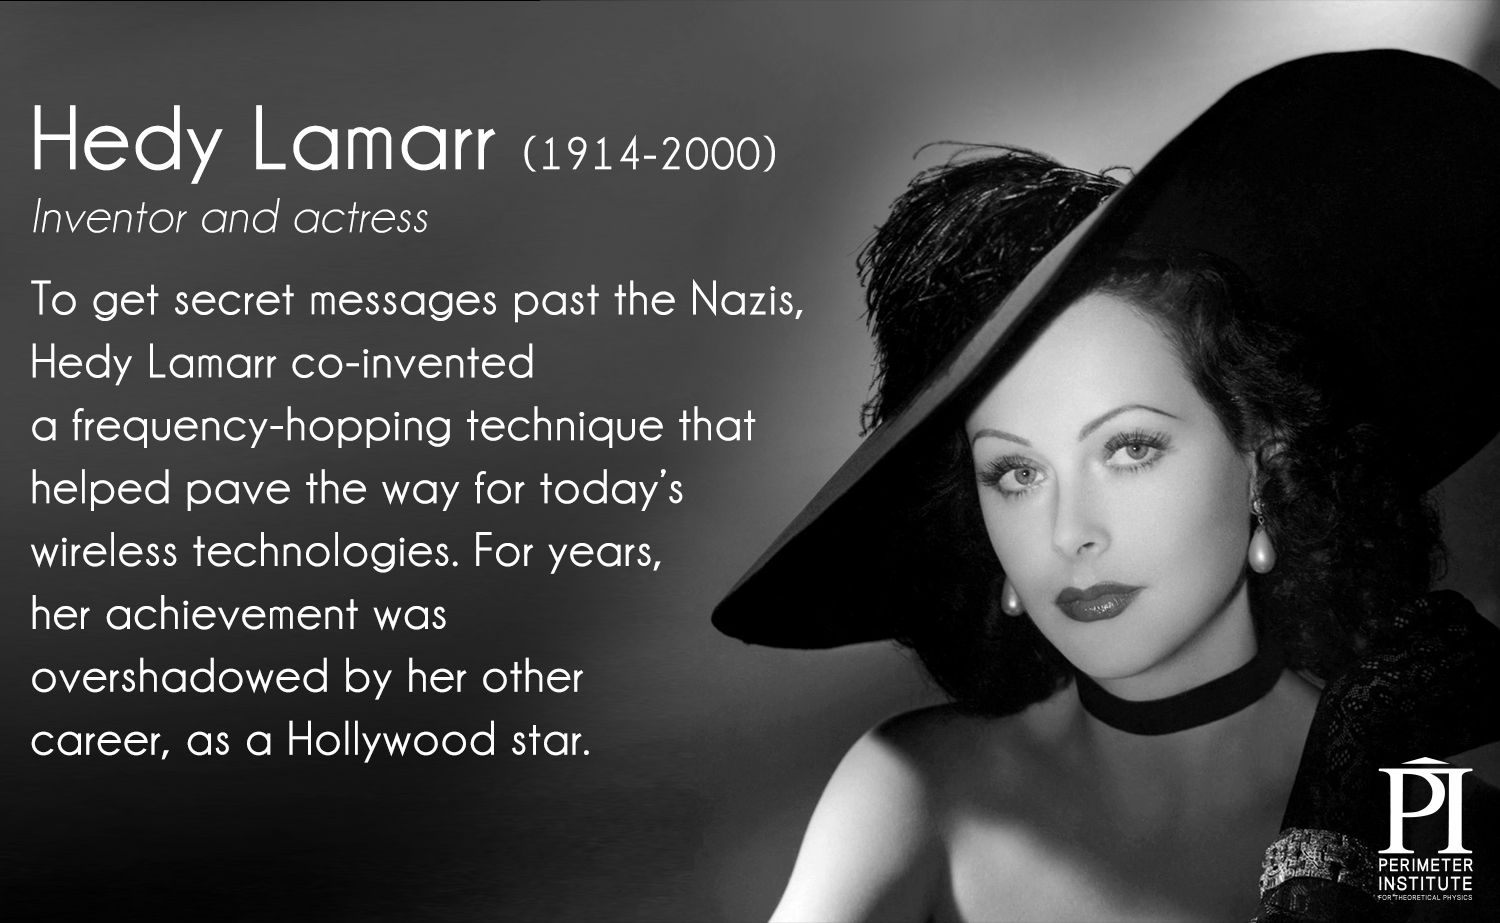 Hedy Lamarr (1914-2000), inventor and actress. To get secret messages past the Nazis, Hedy Lamarr co-invented a frequency-hopping technique that helped pave the way for today's wireless technologies. For years, her achievement was overshadowed by her other career, as a Hollywood star.